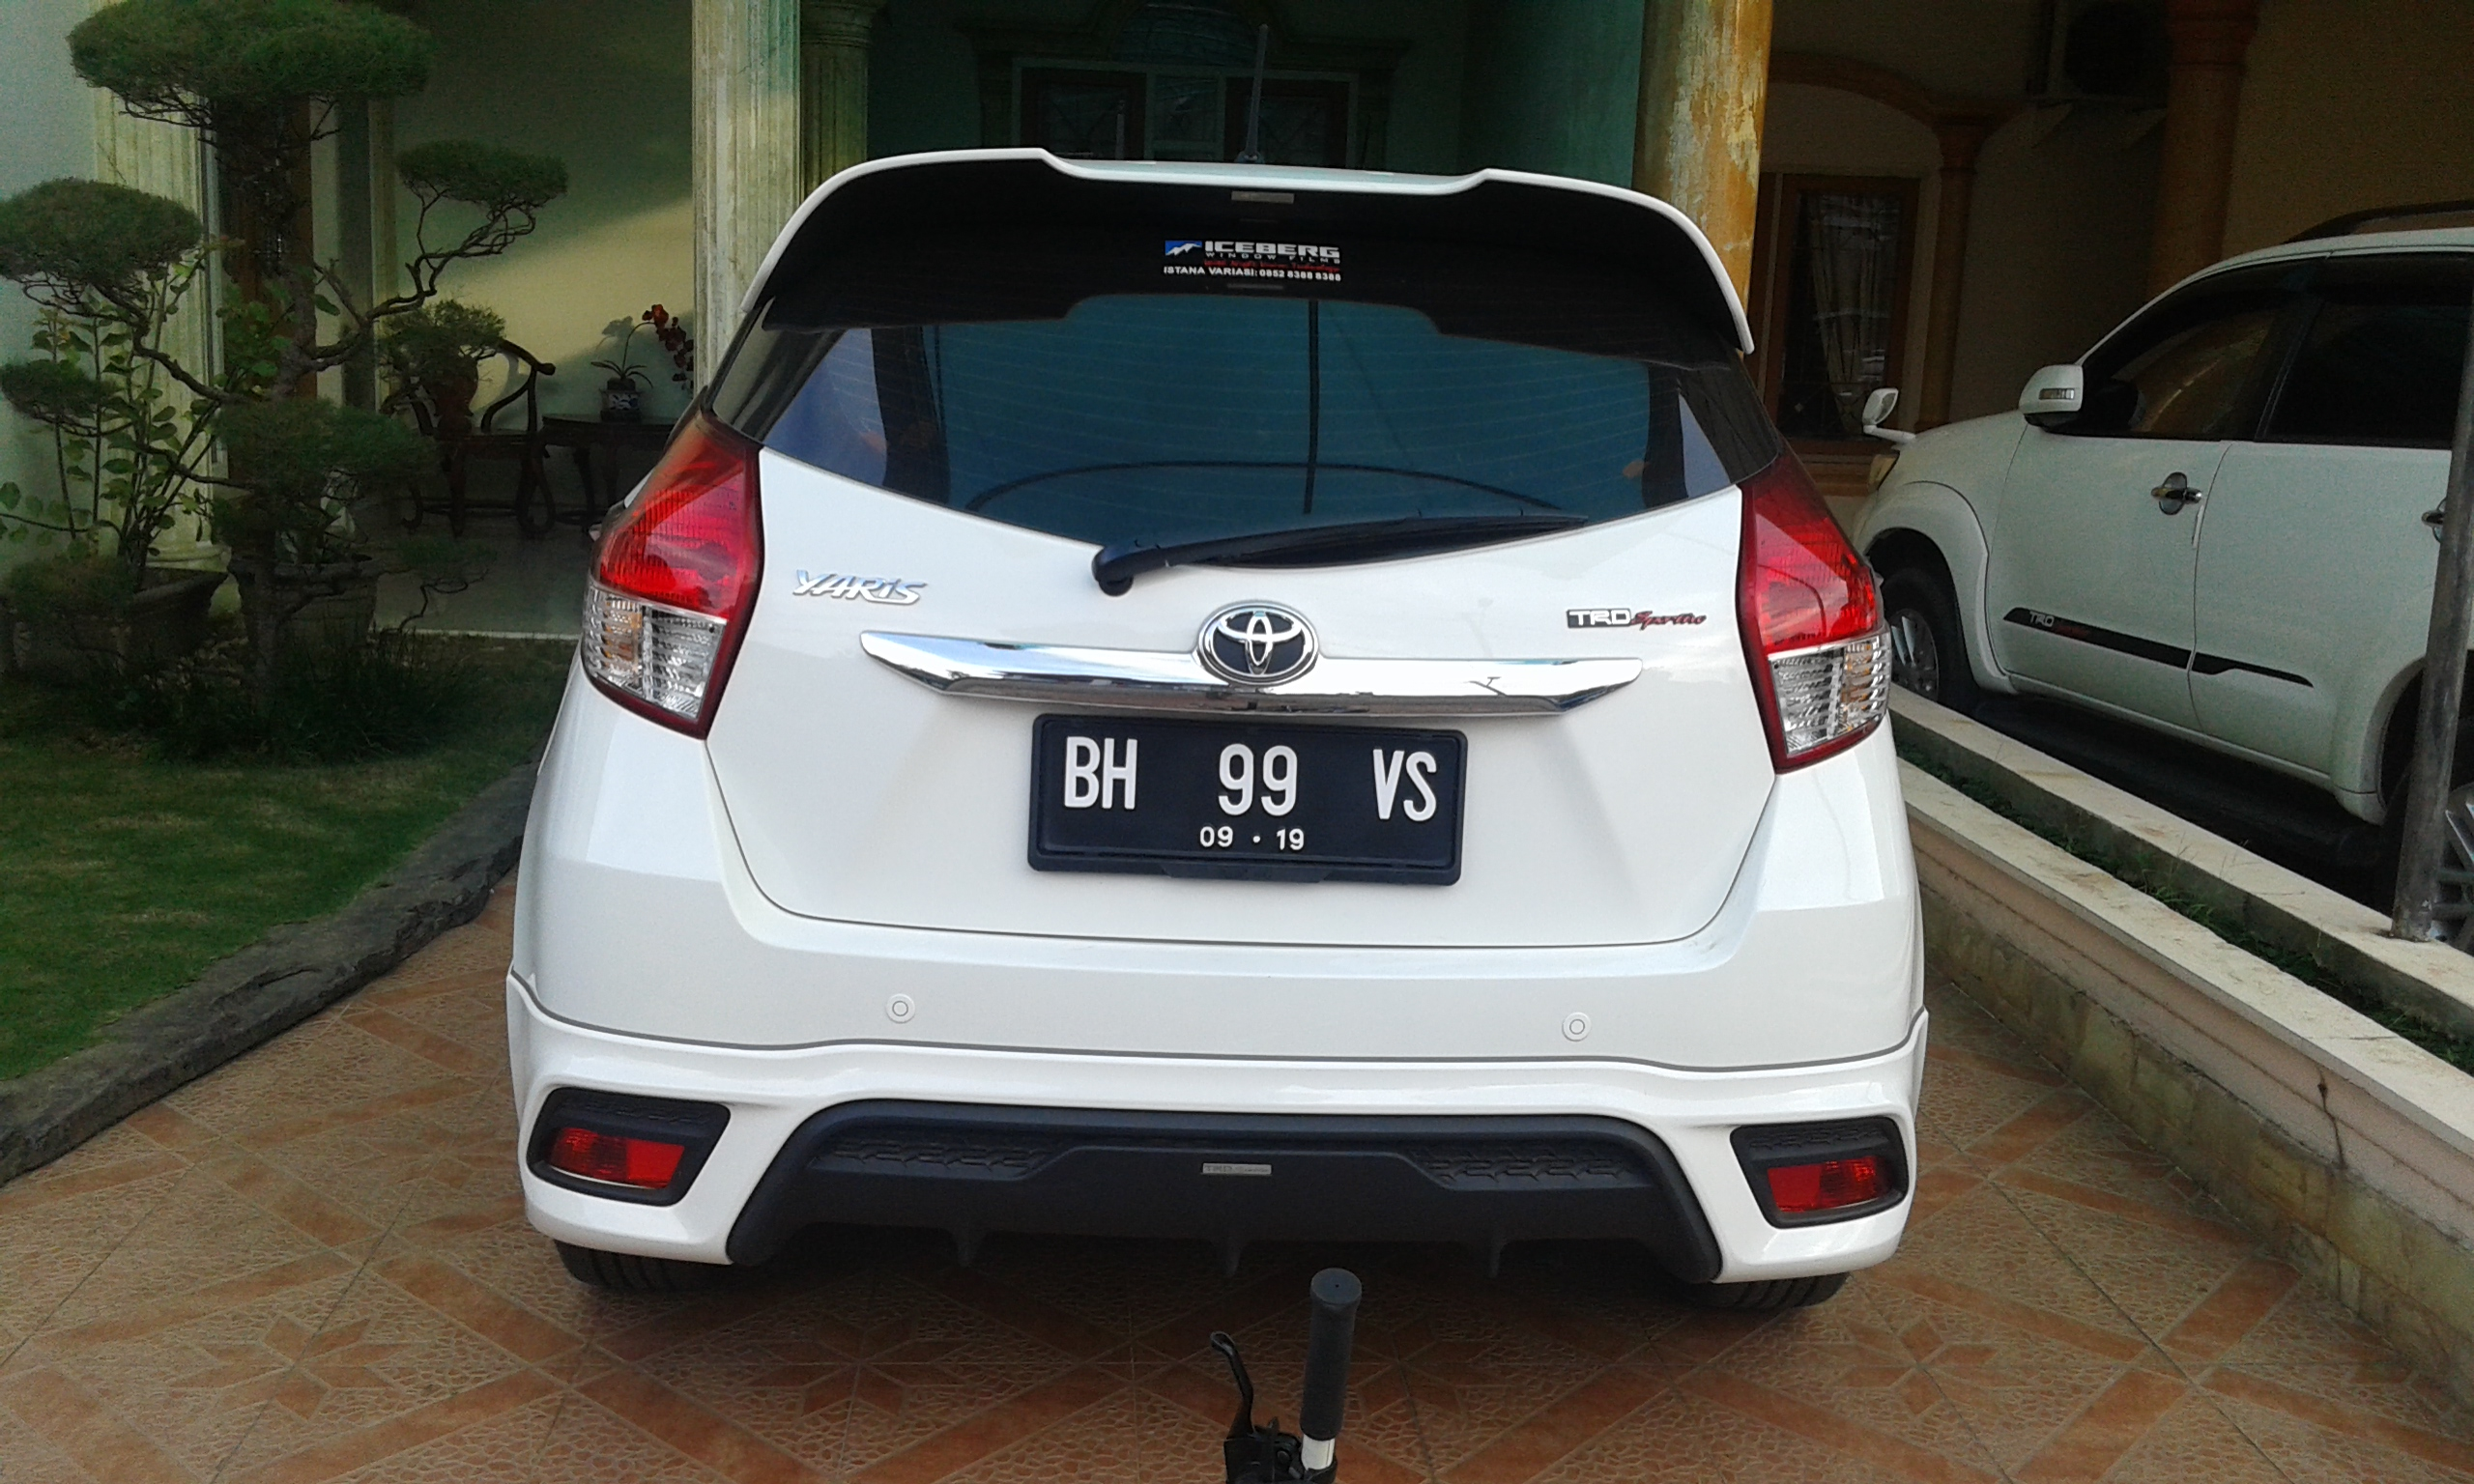 toyota yaris trd sportivo manual grand new avanza veloz 1.5 m/t file xp150 jpg wikimedia commons